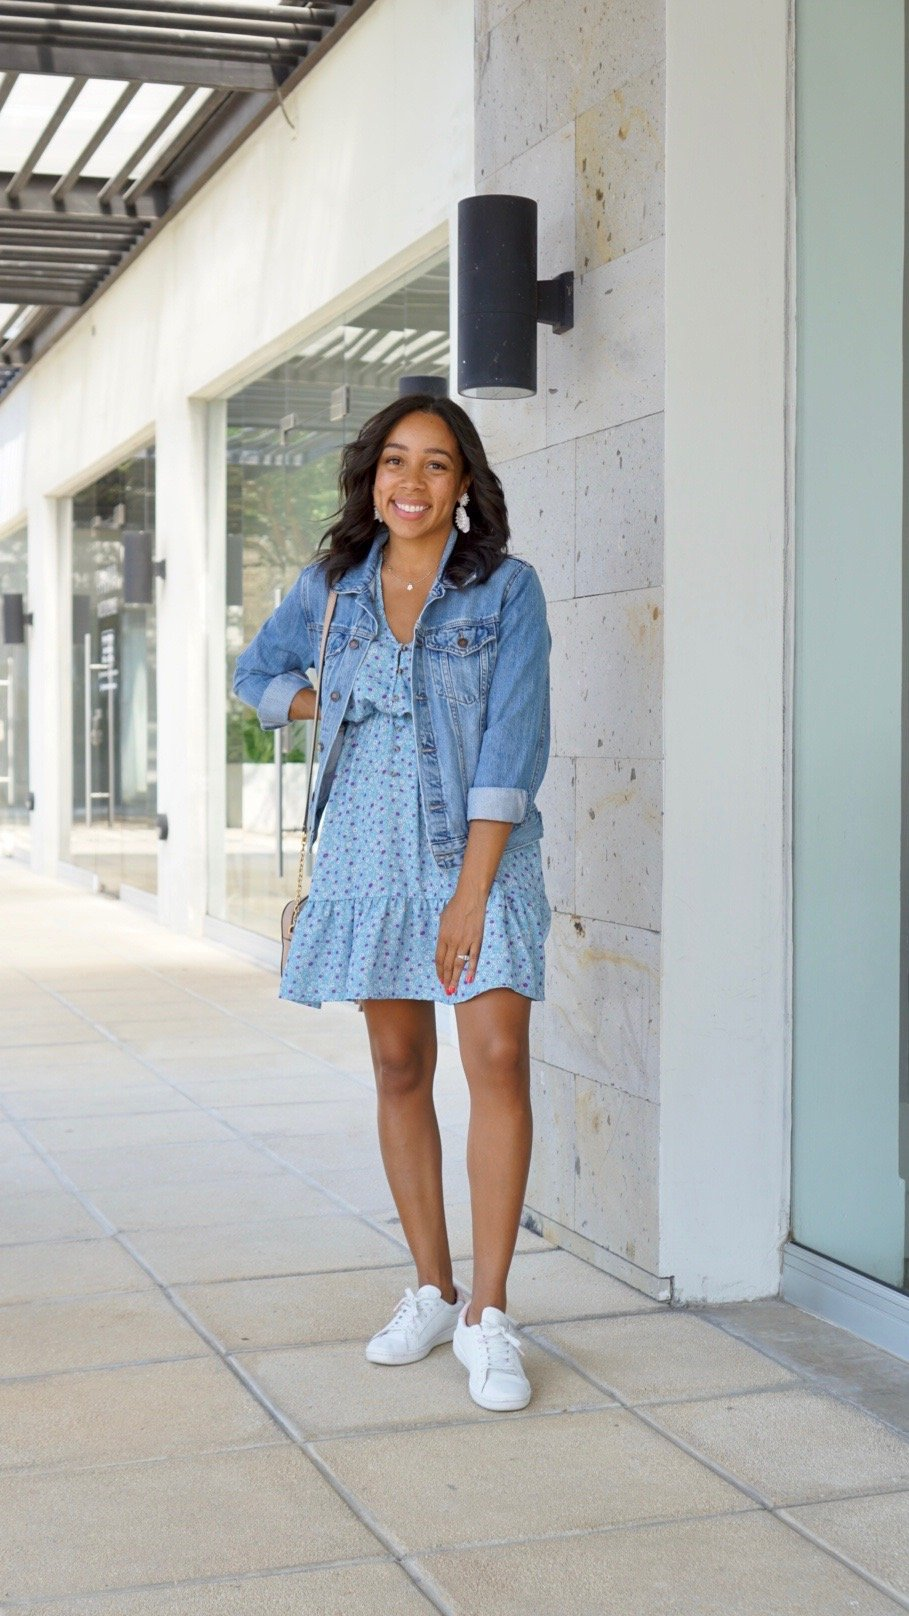 Trendy Thursday LinkUP + How to Wear a Dress with Sneakers